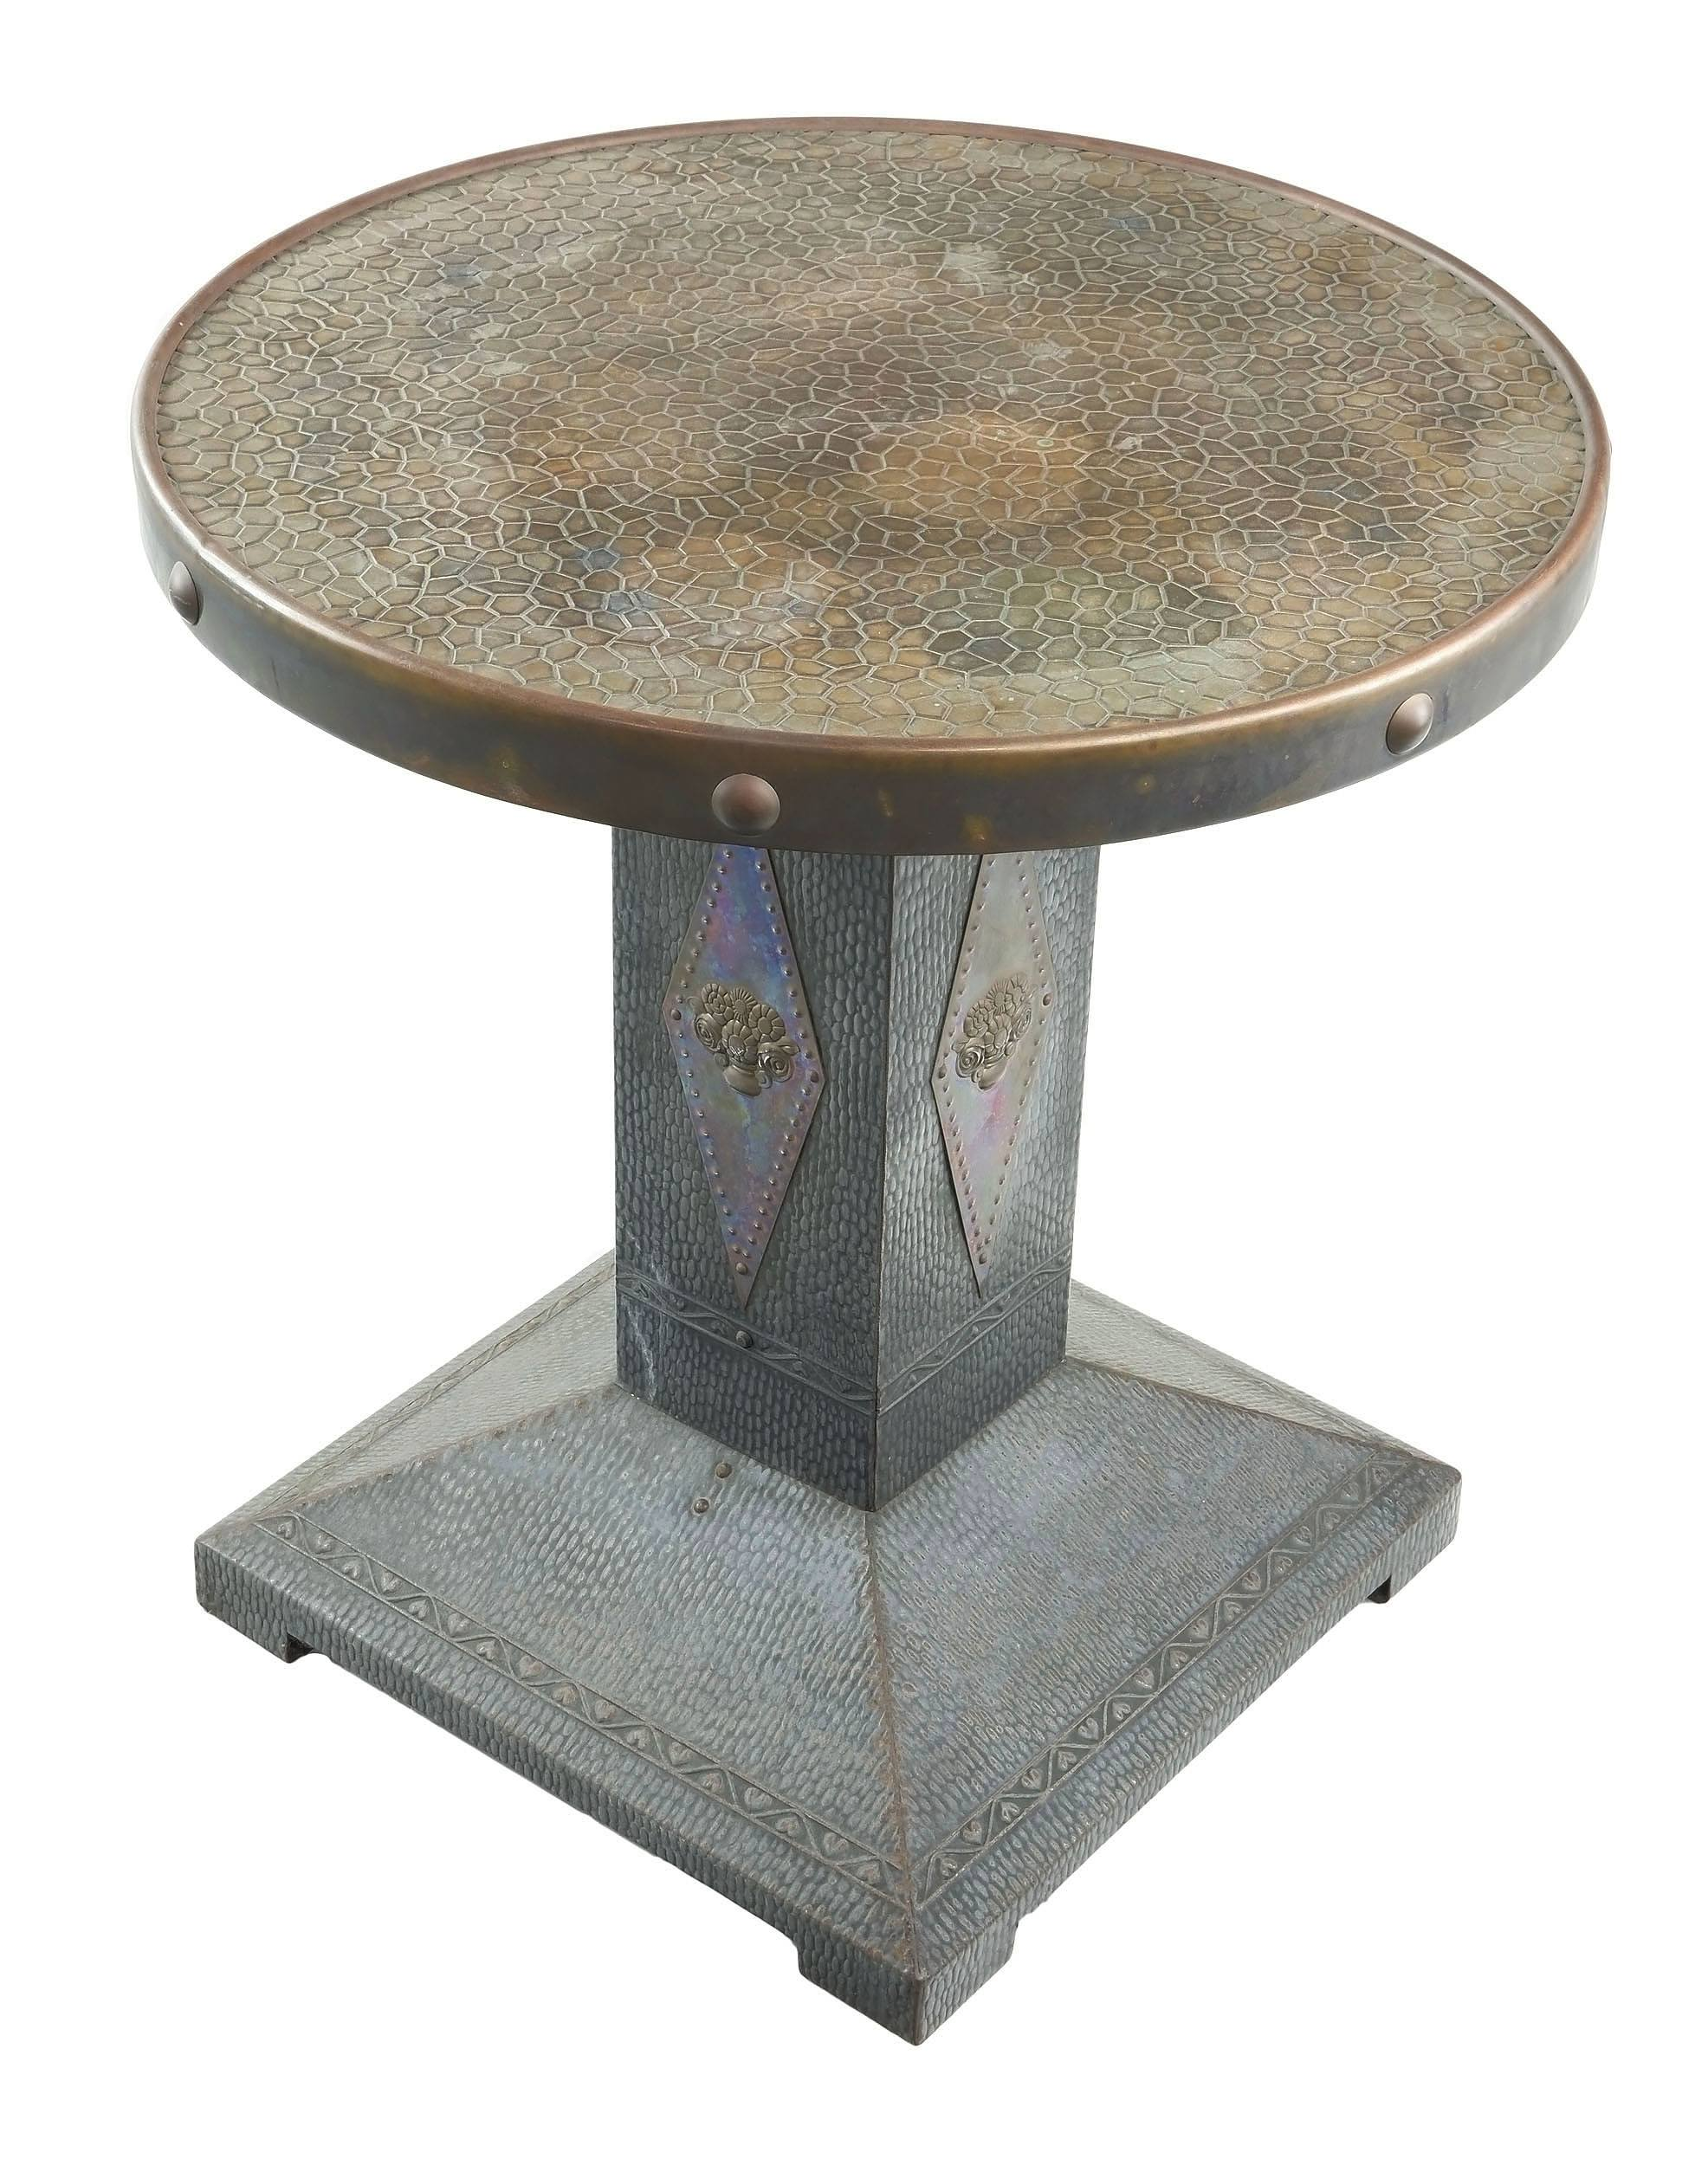 'Arts and Crafts Pressed Copper and Brass Pedestal Side Table, Circa 1920s'